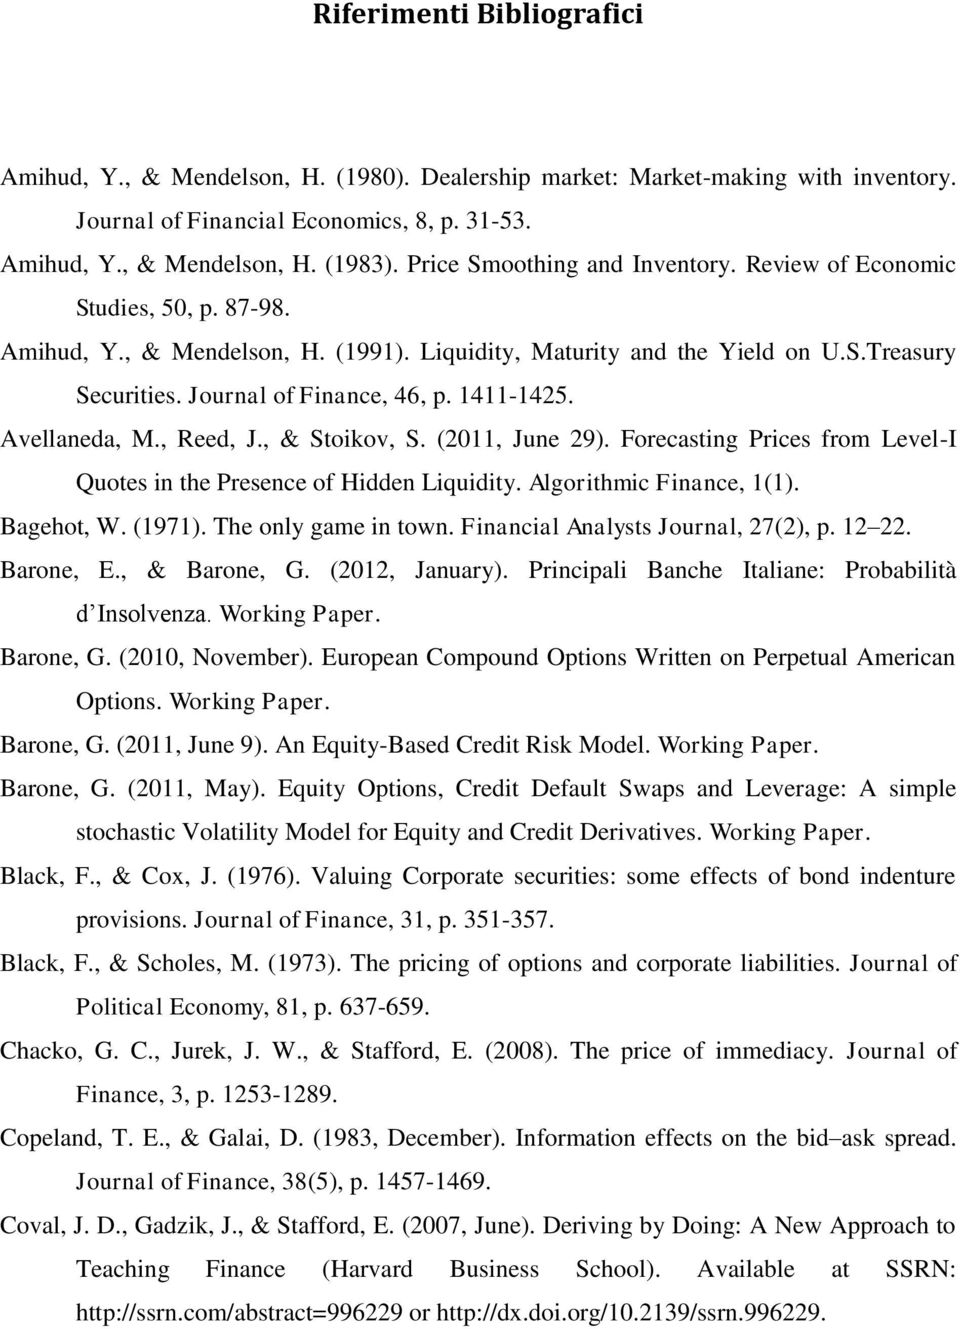 1411-1425. Avellaneda, M., Reed, J., & Stoikov, S. (2011, June 29). Forecasting Prices from Level-I Quotes in the Presence of Hidden Liquidity. Algorithmic Finance, 1(1). Bagehot, W. (1971).